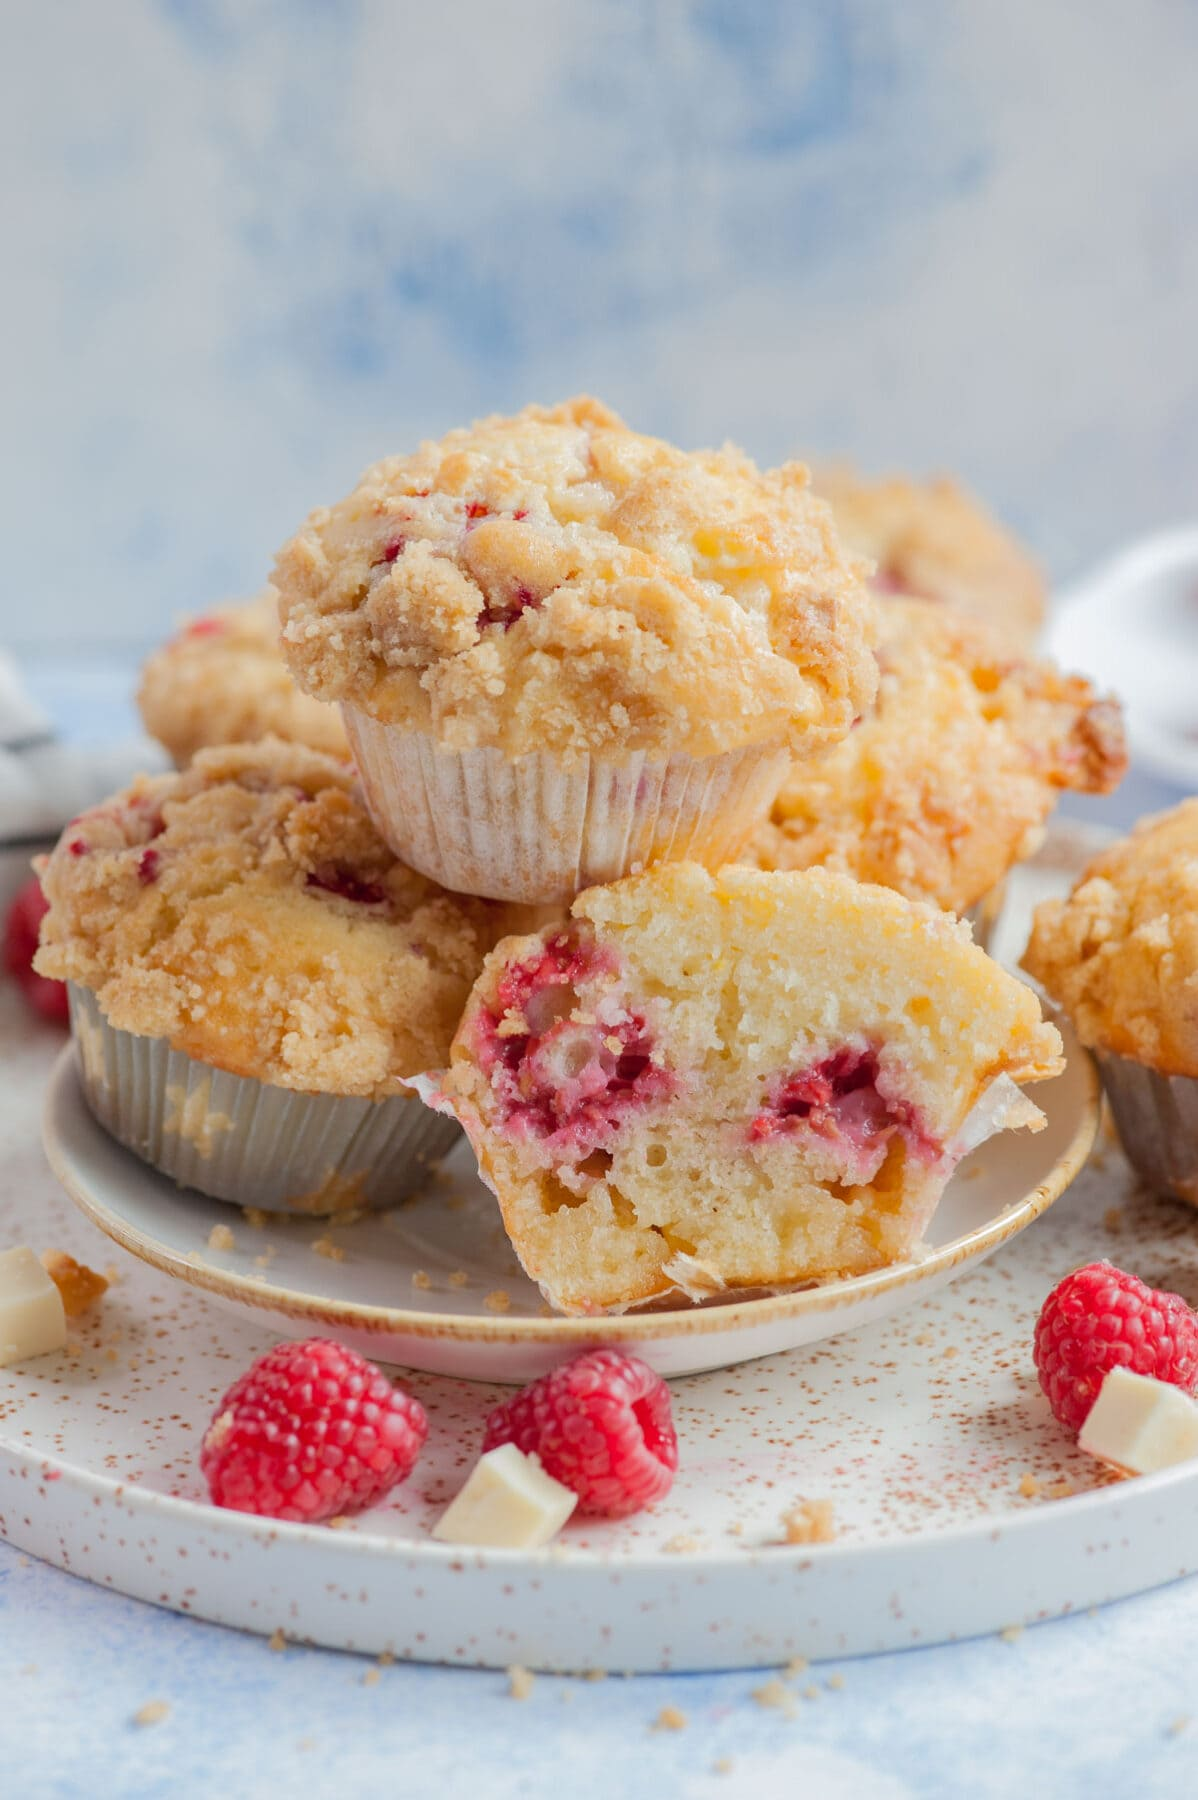 Raspberry muffins on a white plate. One muffin cut in half. Raspberries and white chocolate chunks scattered around.